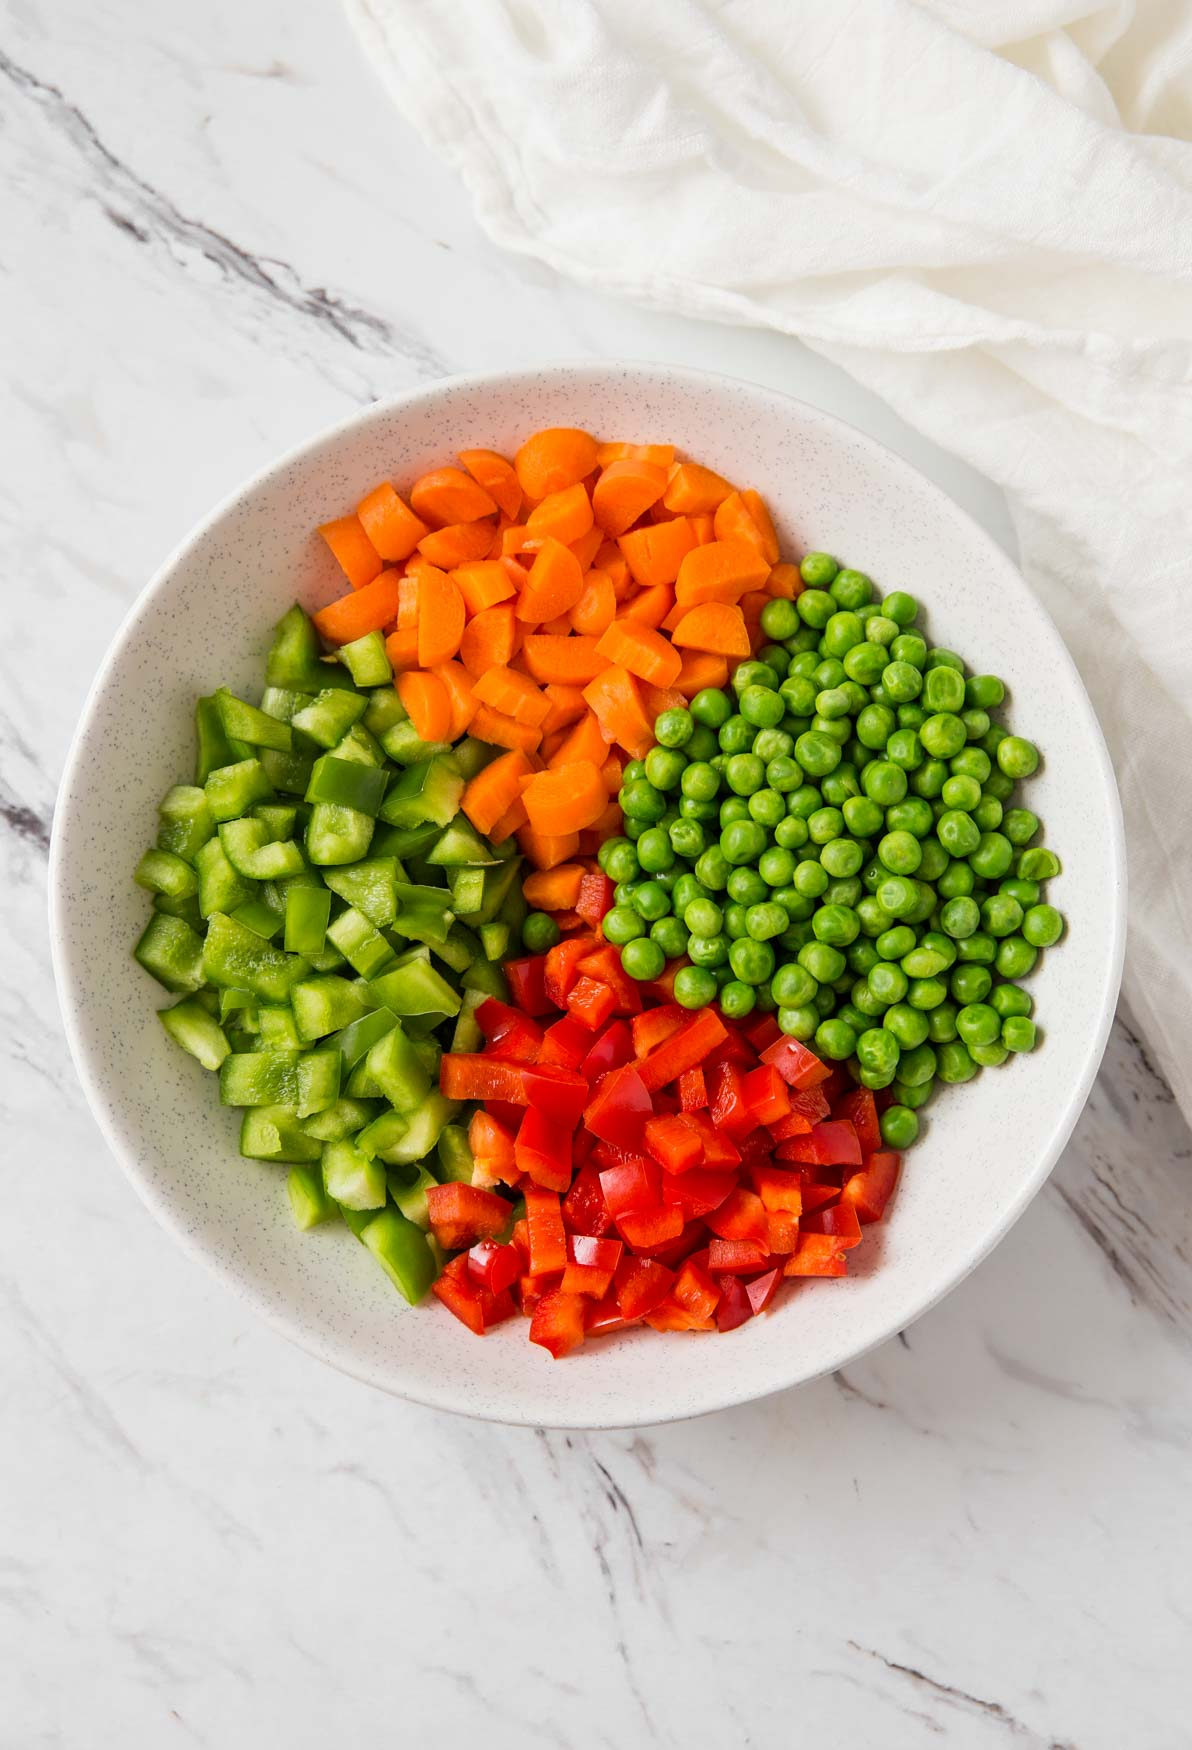 Diced fresh vegetables in a mixing bowl for making vegetable fried rice